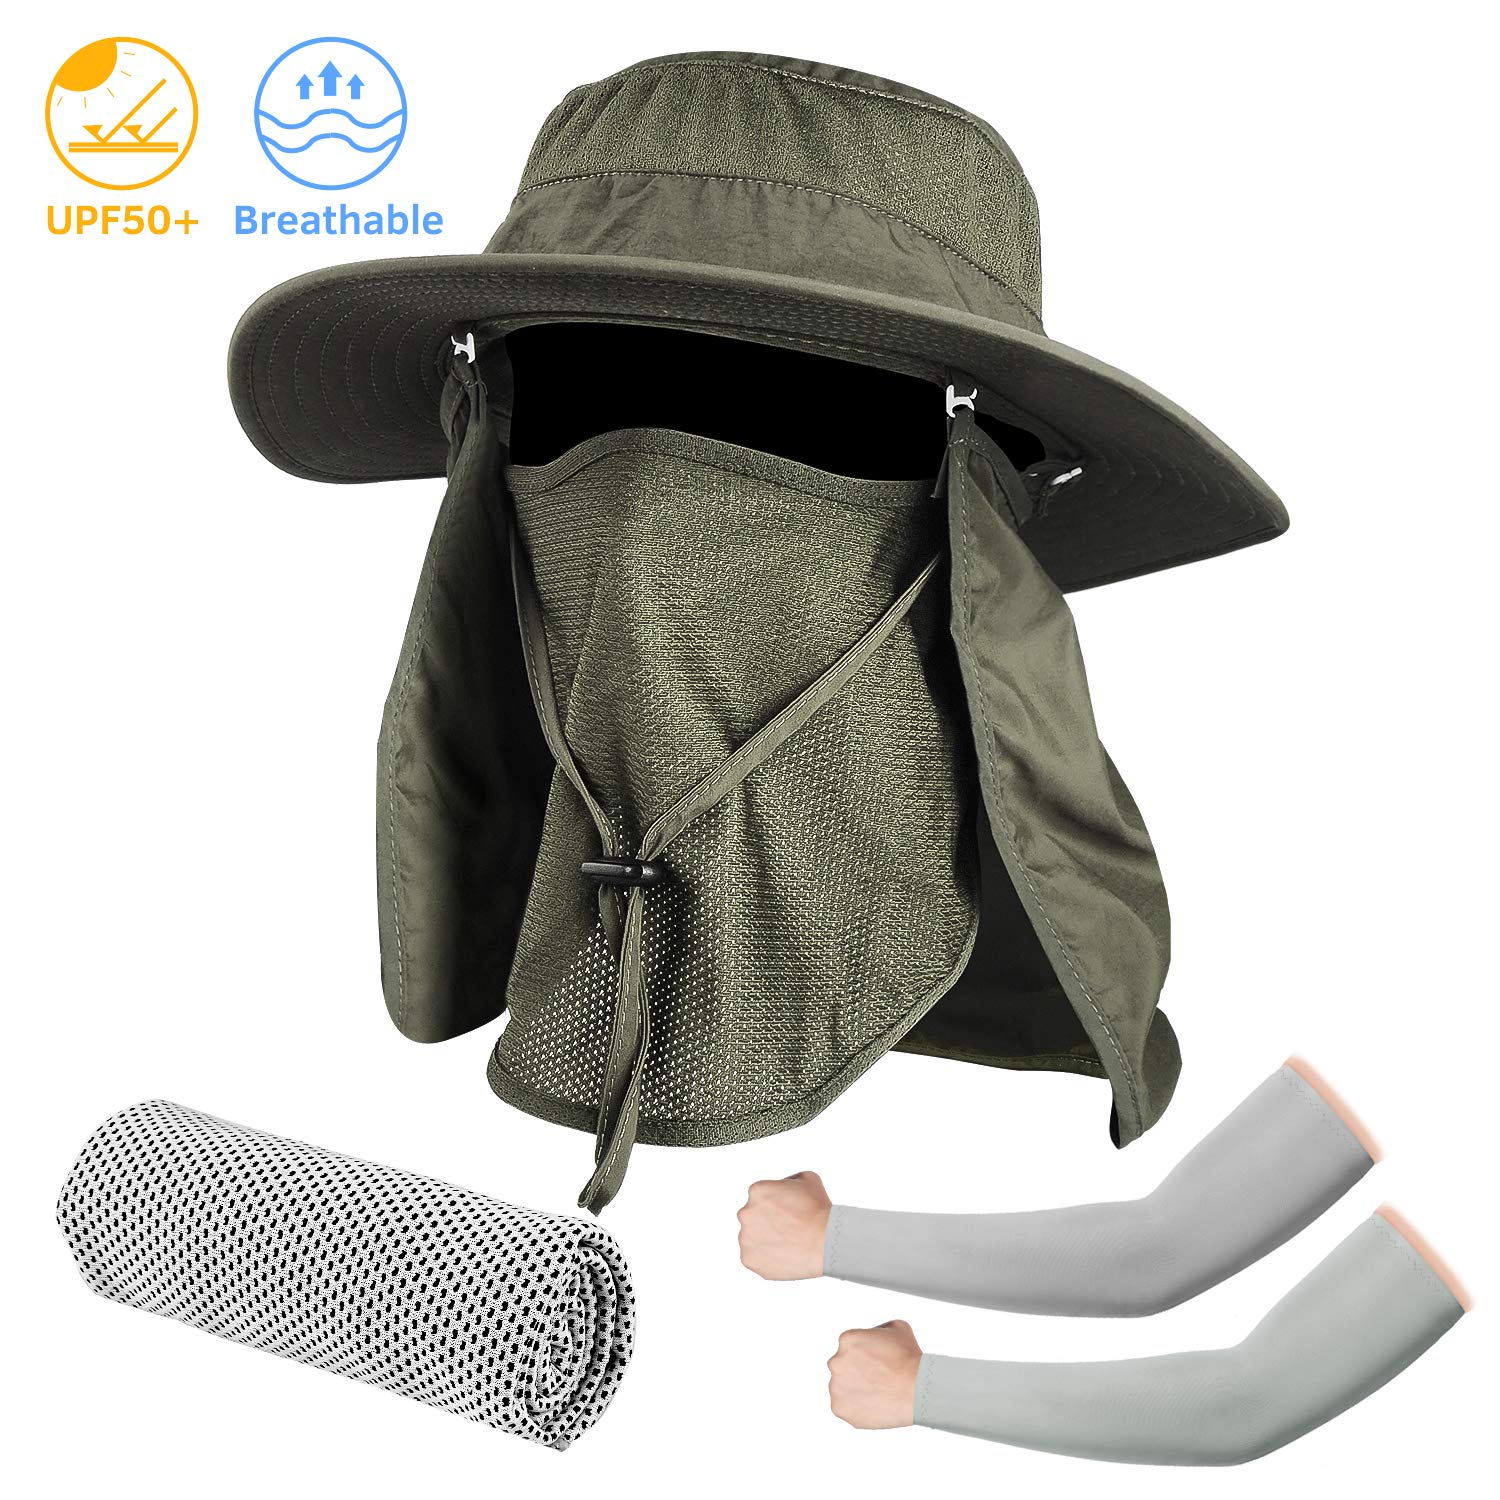 Seektop Fishing Hat, Men Women UPF 50 Protection Outdoor Sun Hiking Hat with Removable Neck Flap and Face Cover Mask -Kit Include Cooling Arm Sleeves, Cooling Towel